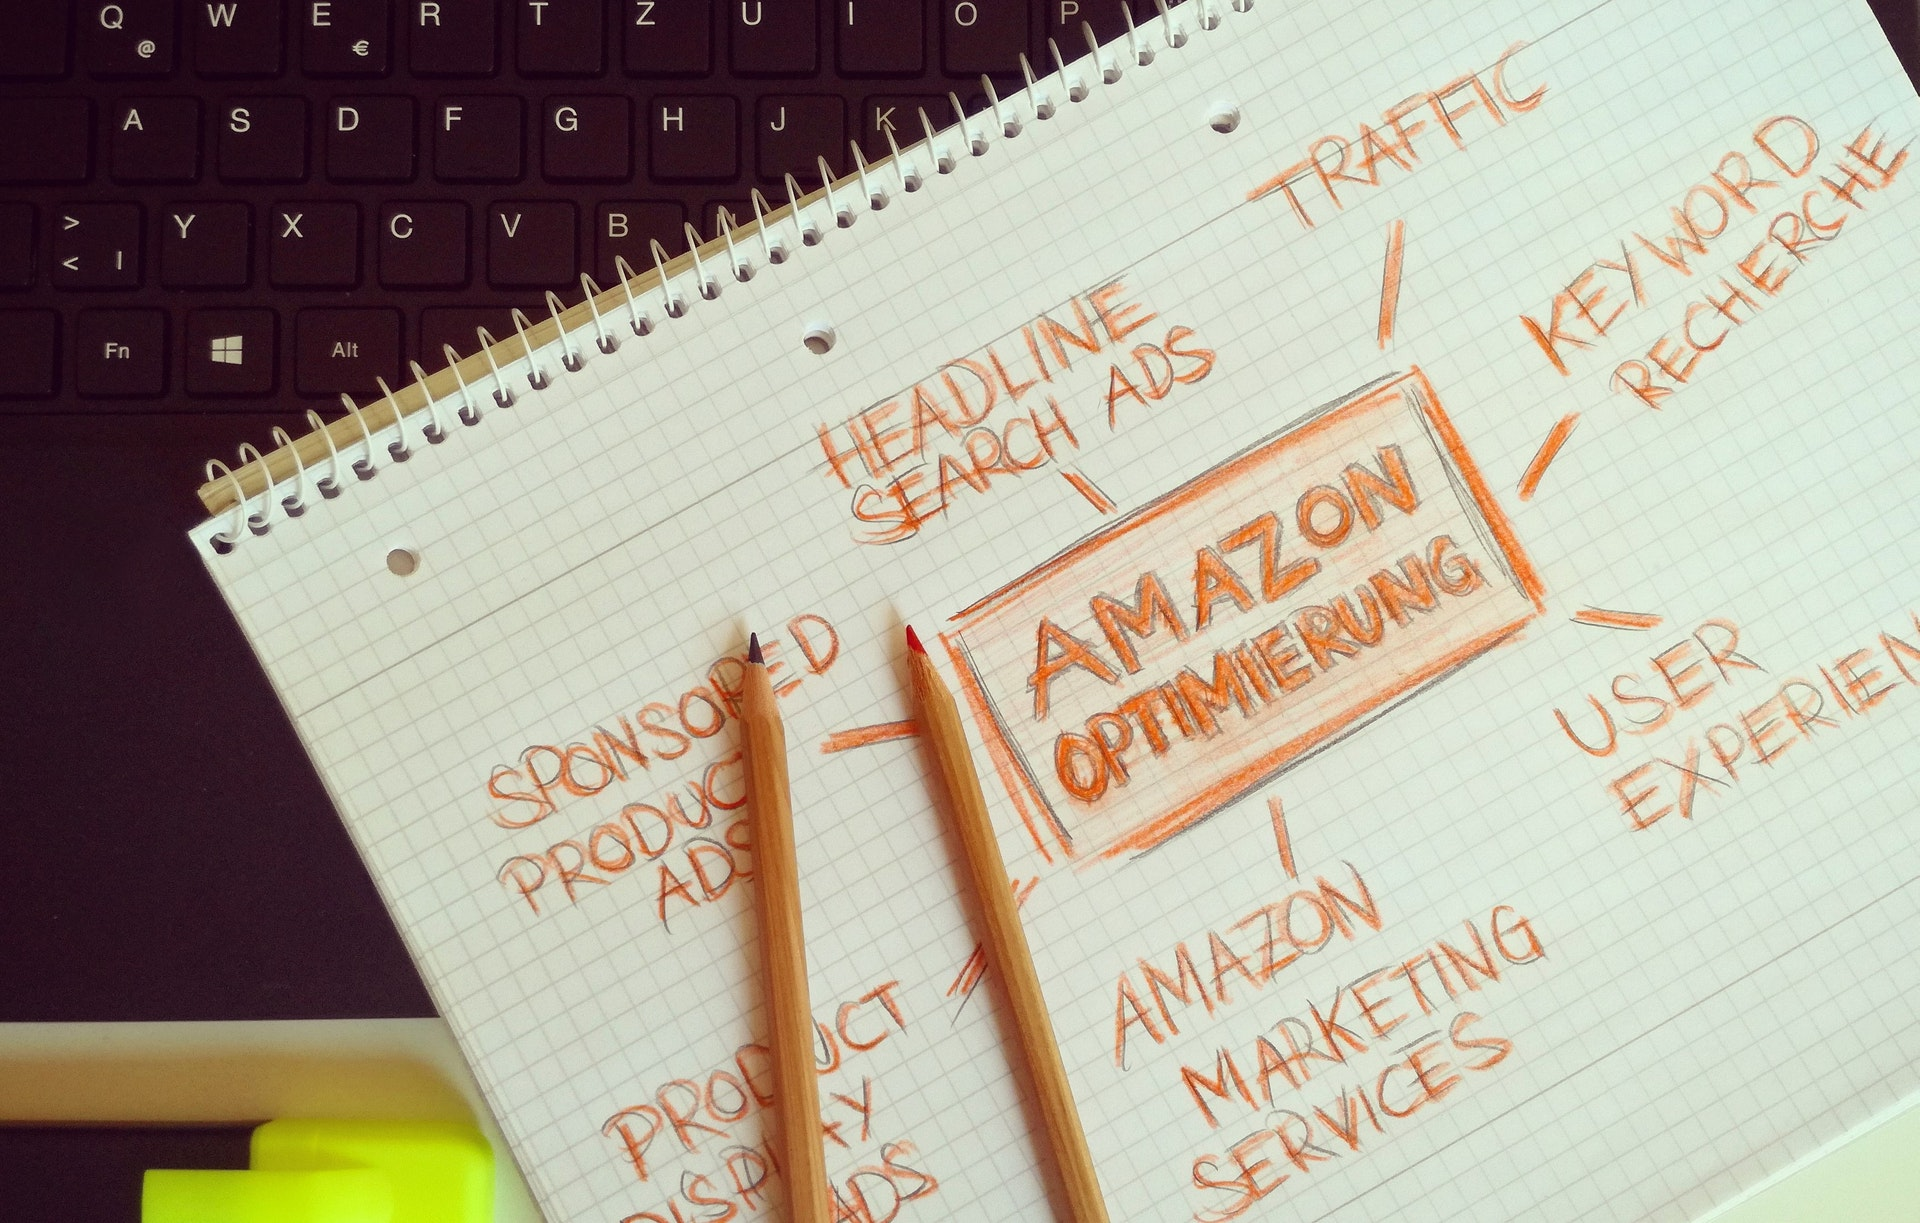 What We Can Learn About Web Design From Amazon